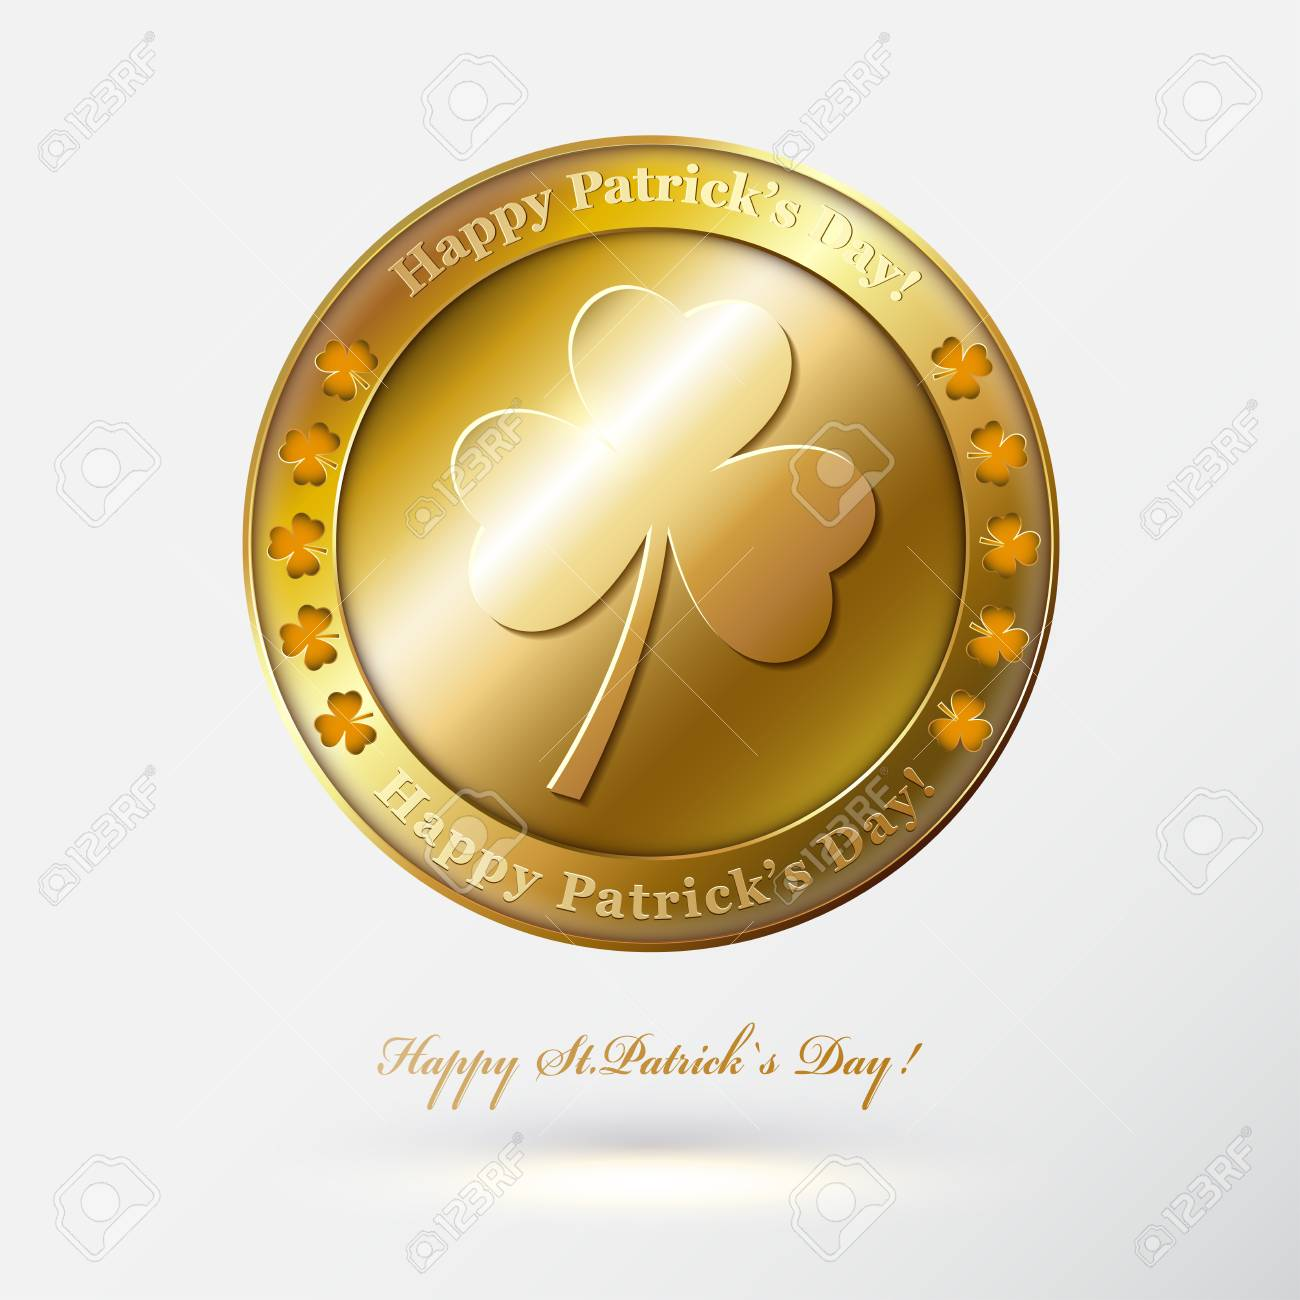 photo regarding Gold Coin Template Printable named Content St Patricks Working day card or record with sensible gold..